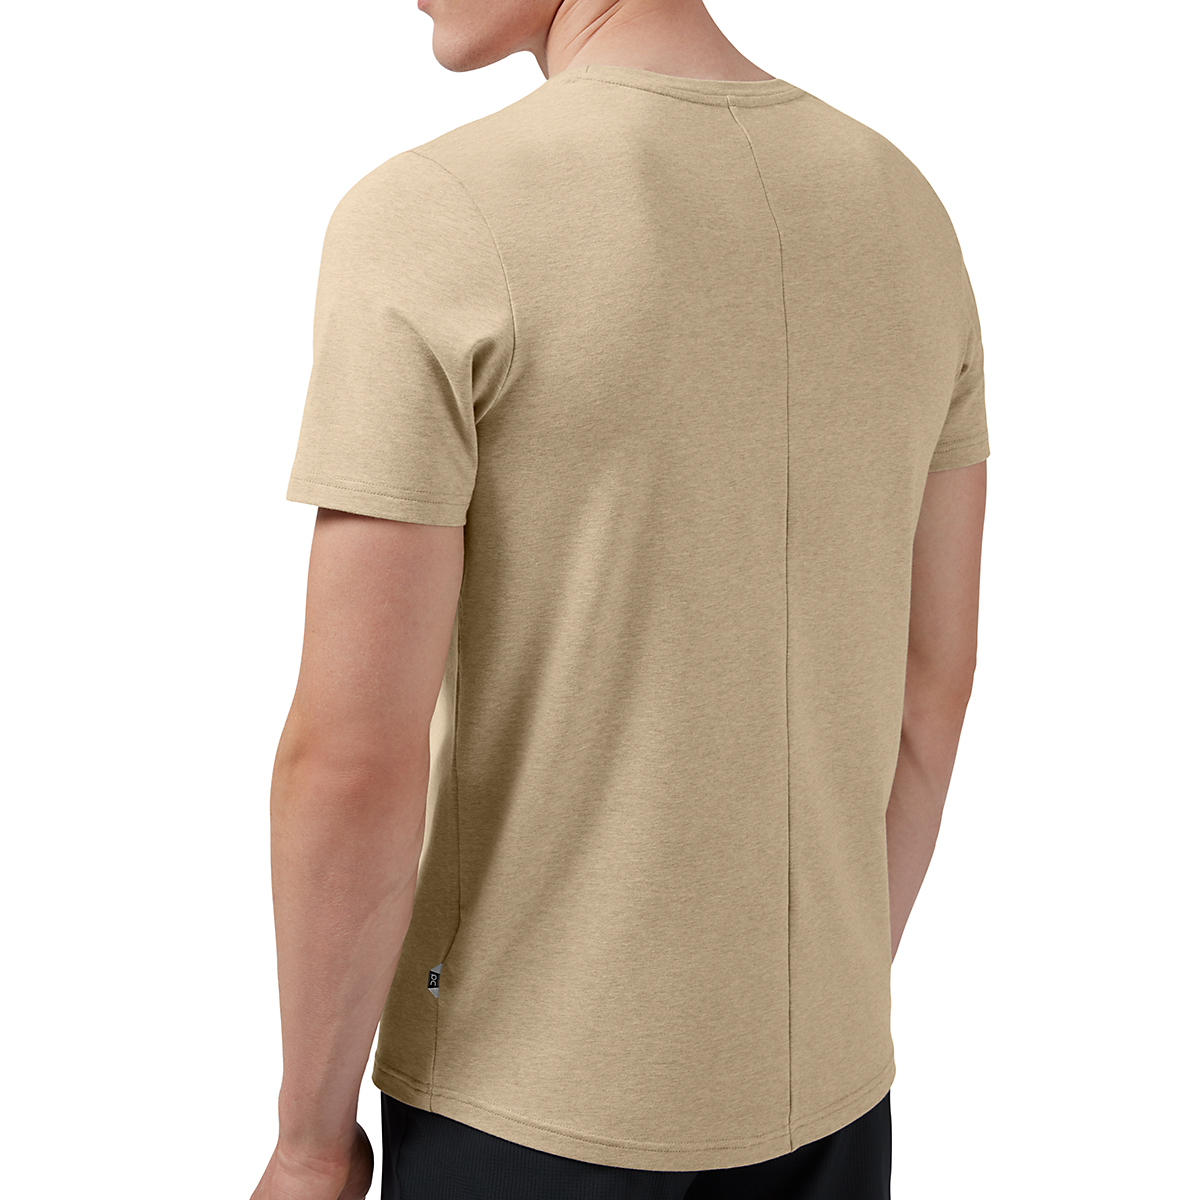 Men's On On-T Short Sleeve Shirt - Color: Camel - Size: XS, Camel, large, image 2